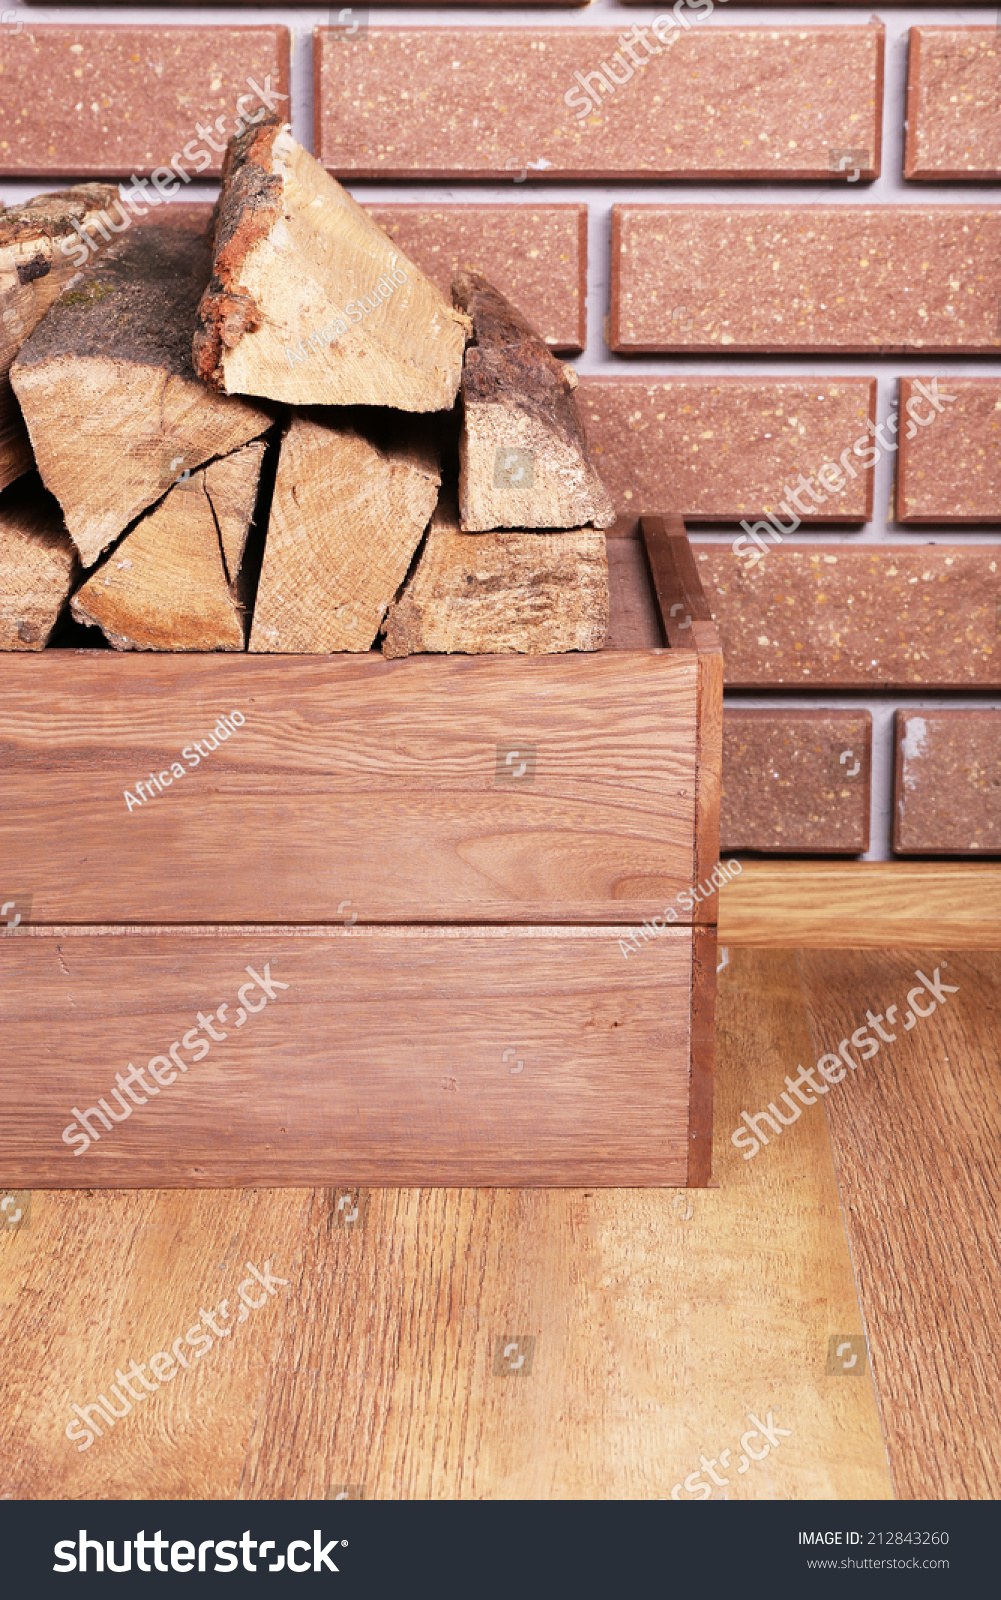 Wooden Box Firewood On Floor On Stock Photo Edit Now 212843260